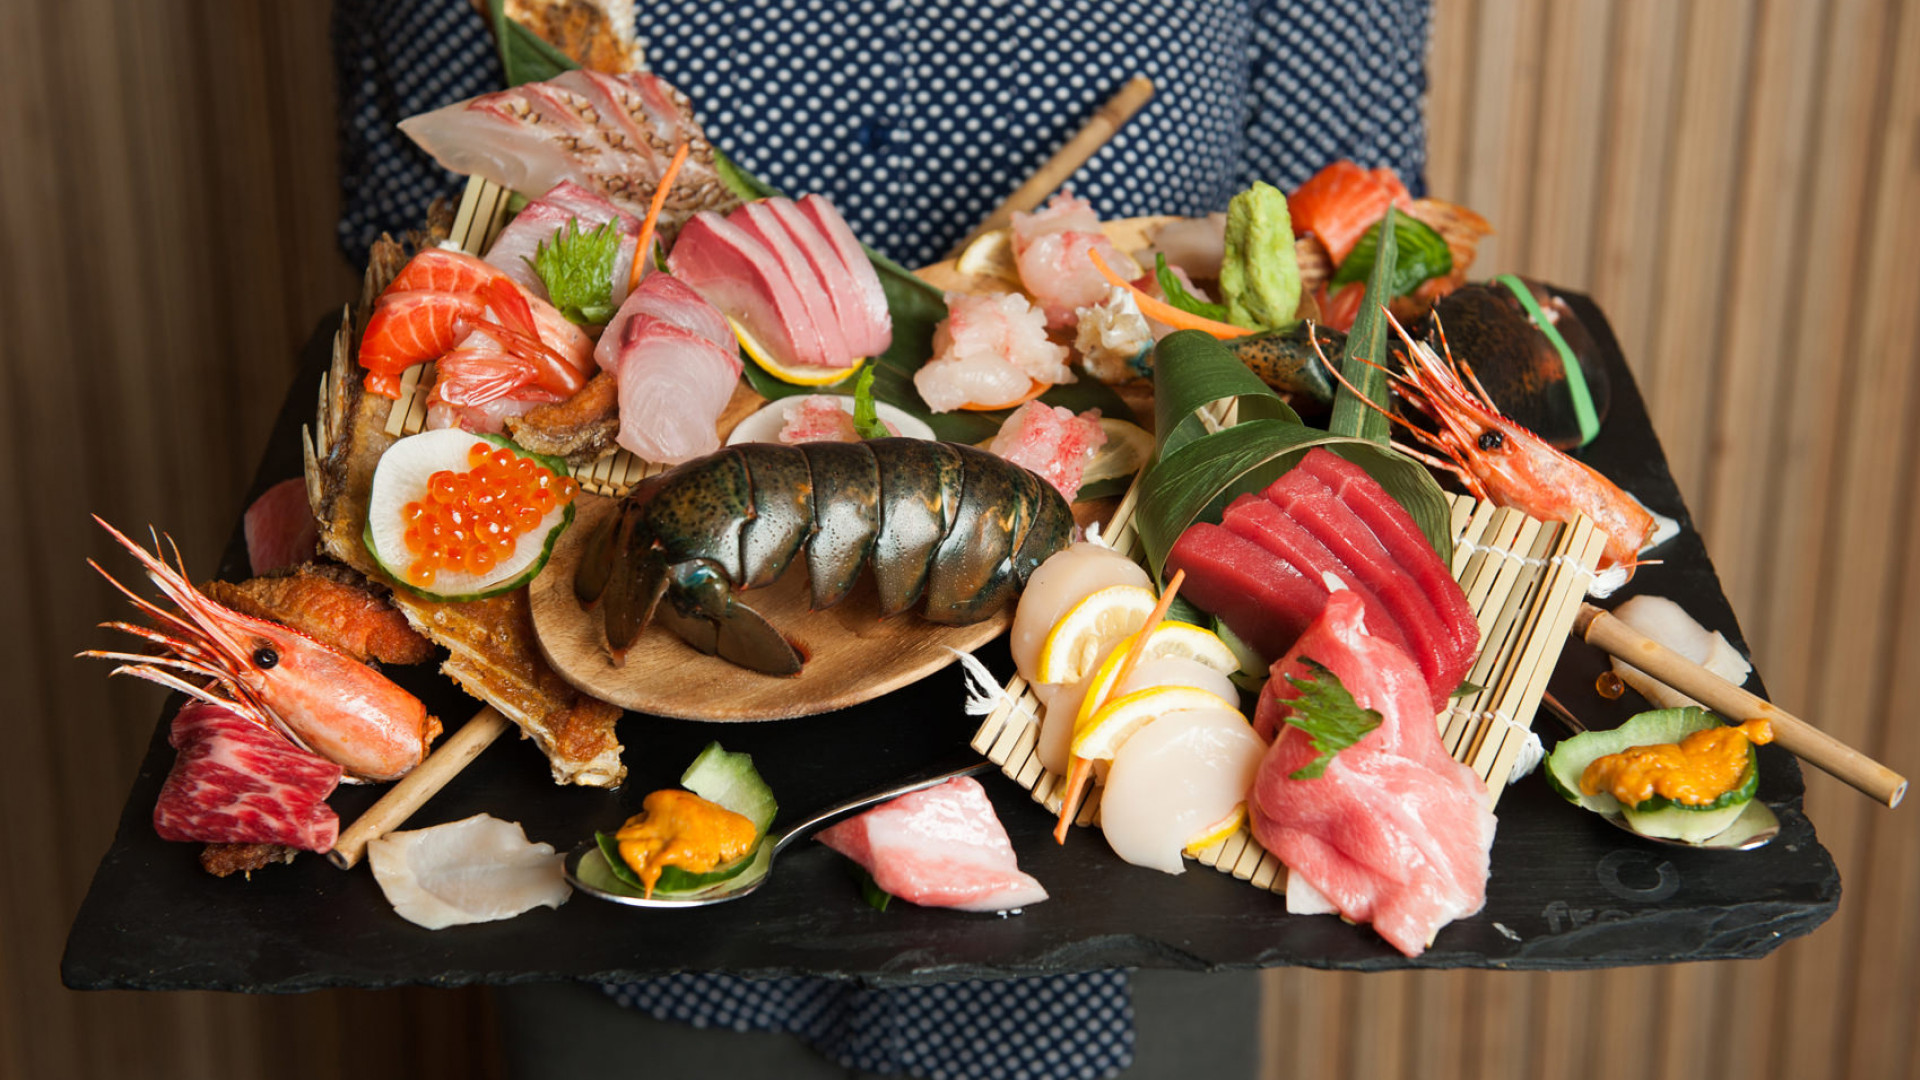 The best sushi in Toronto | A seafood and sashimi platter at JaBistro